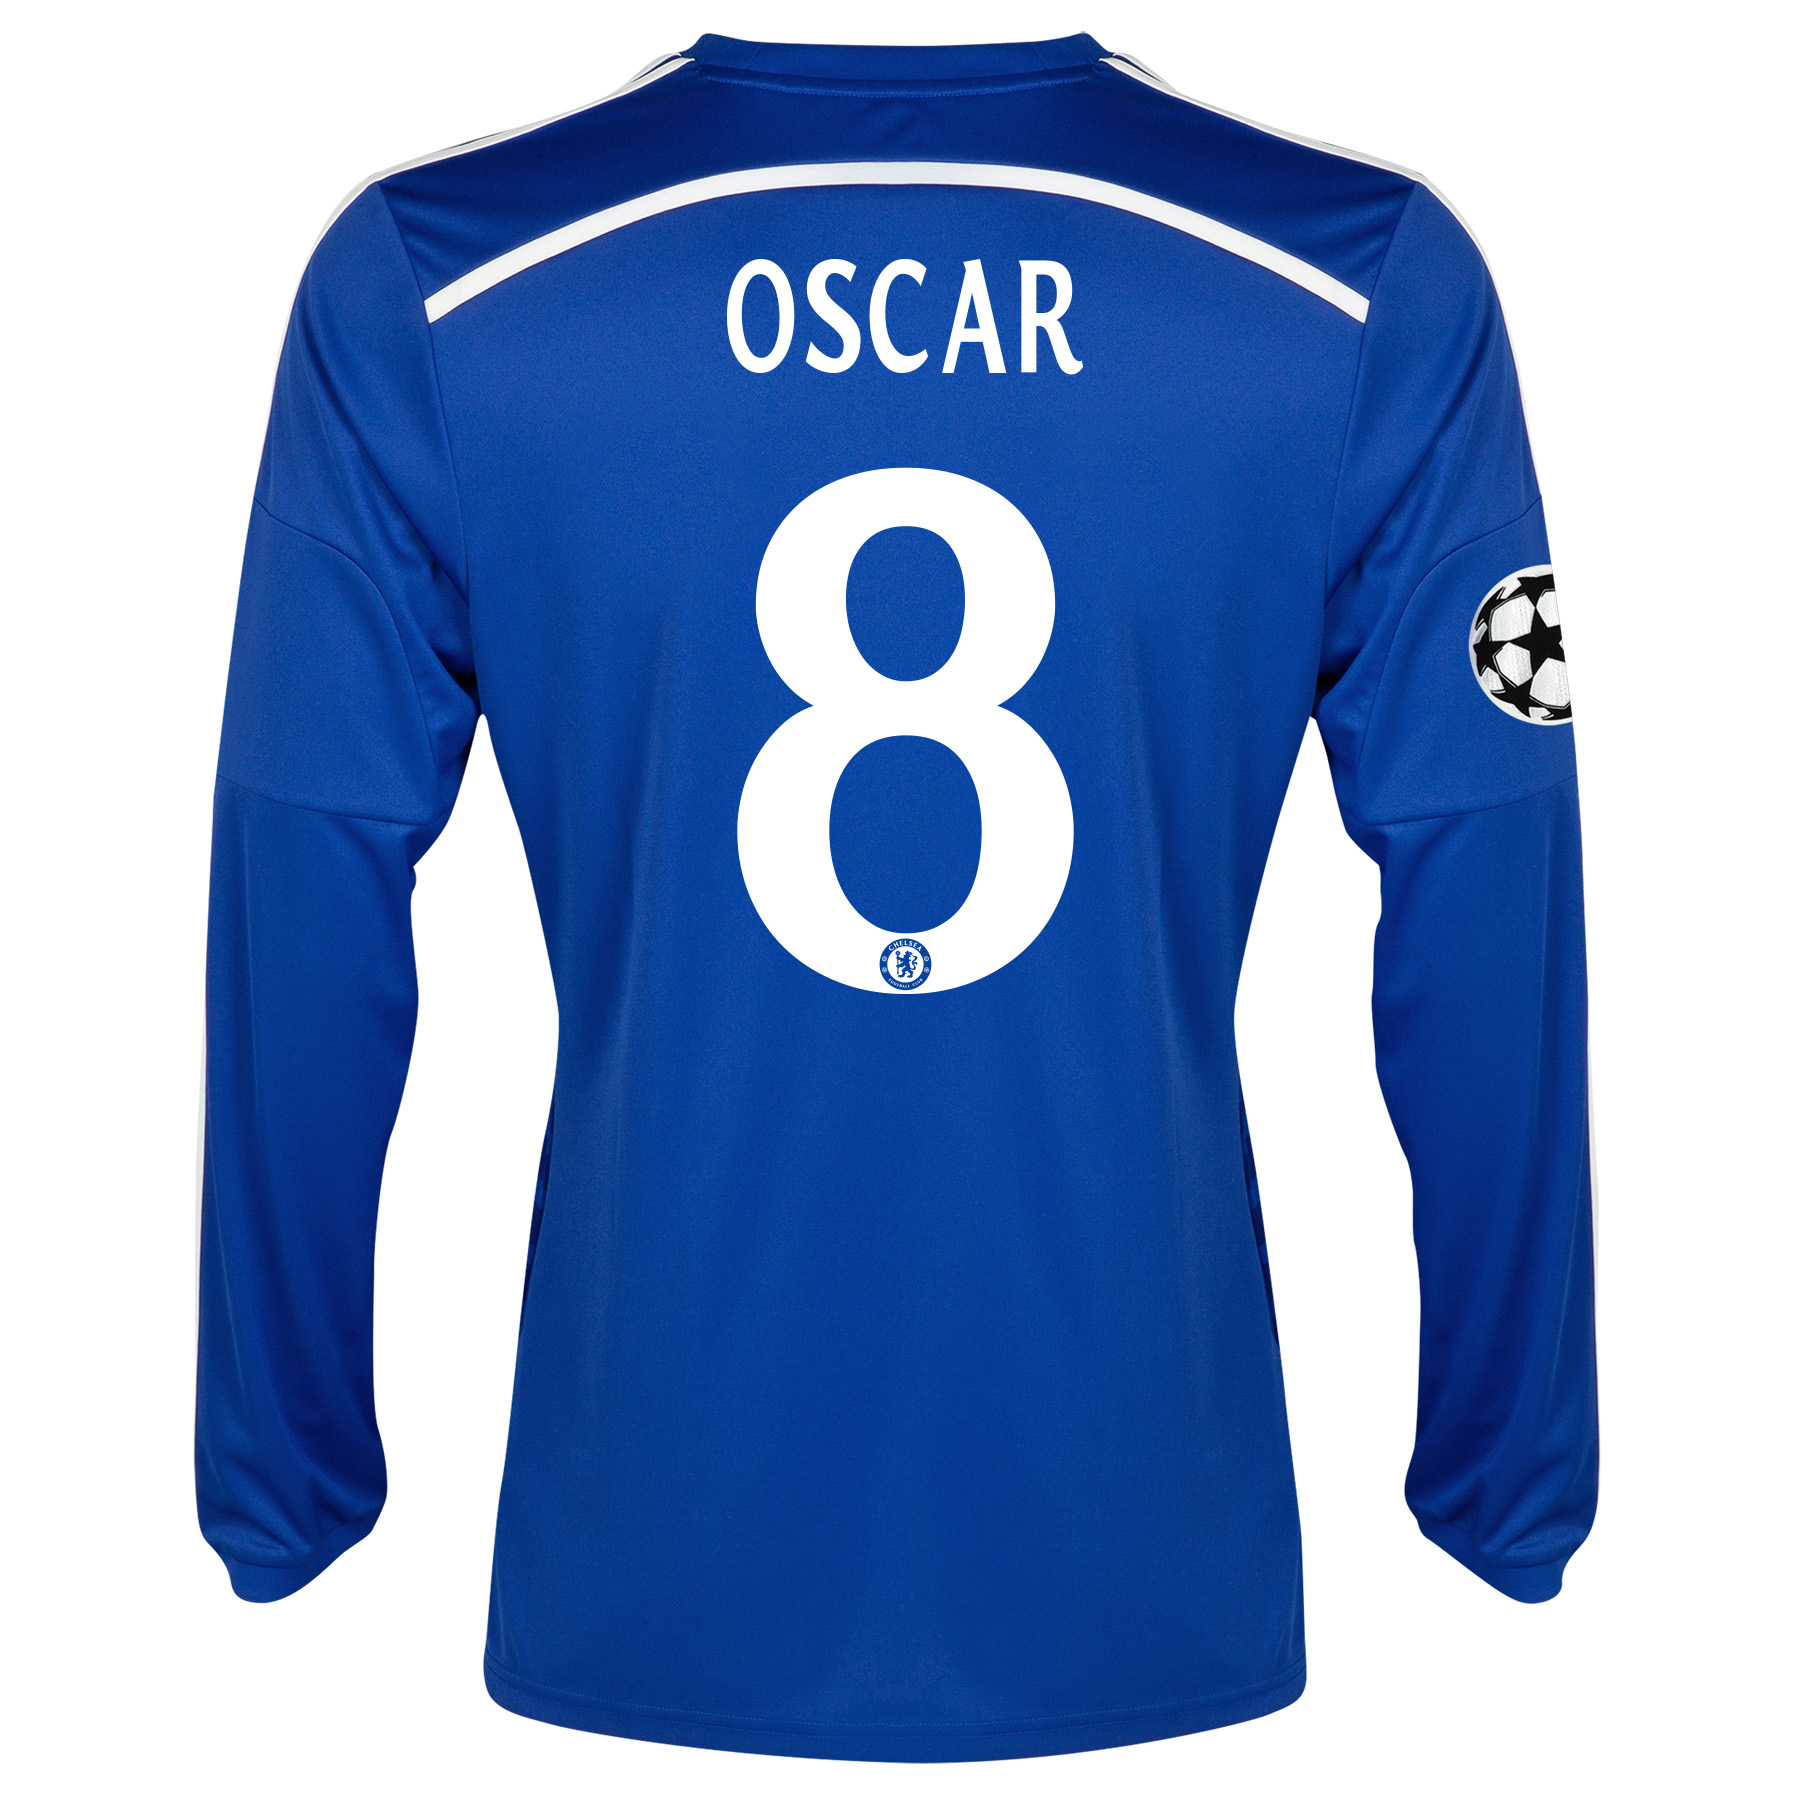 Chelsea UEFA Champions League Home Shirt 2014/15 - Long Sleeve Blue with Oscar 11 printing